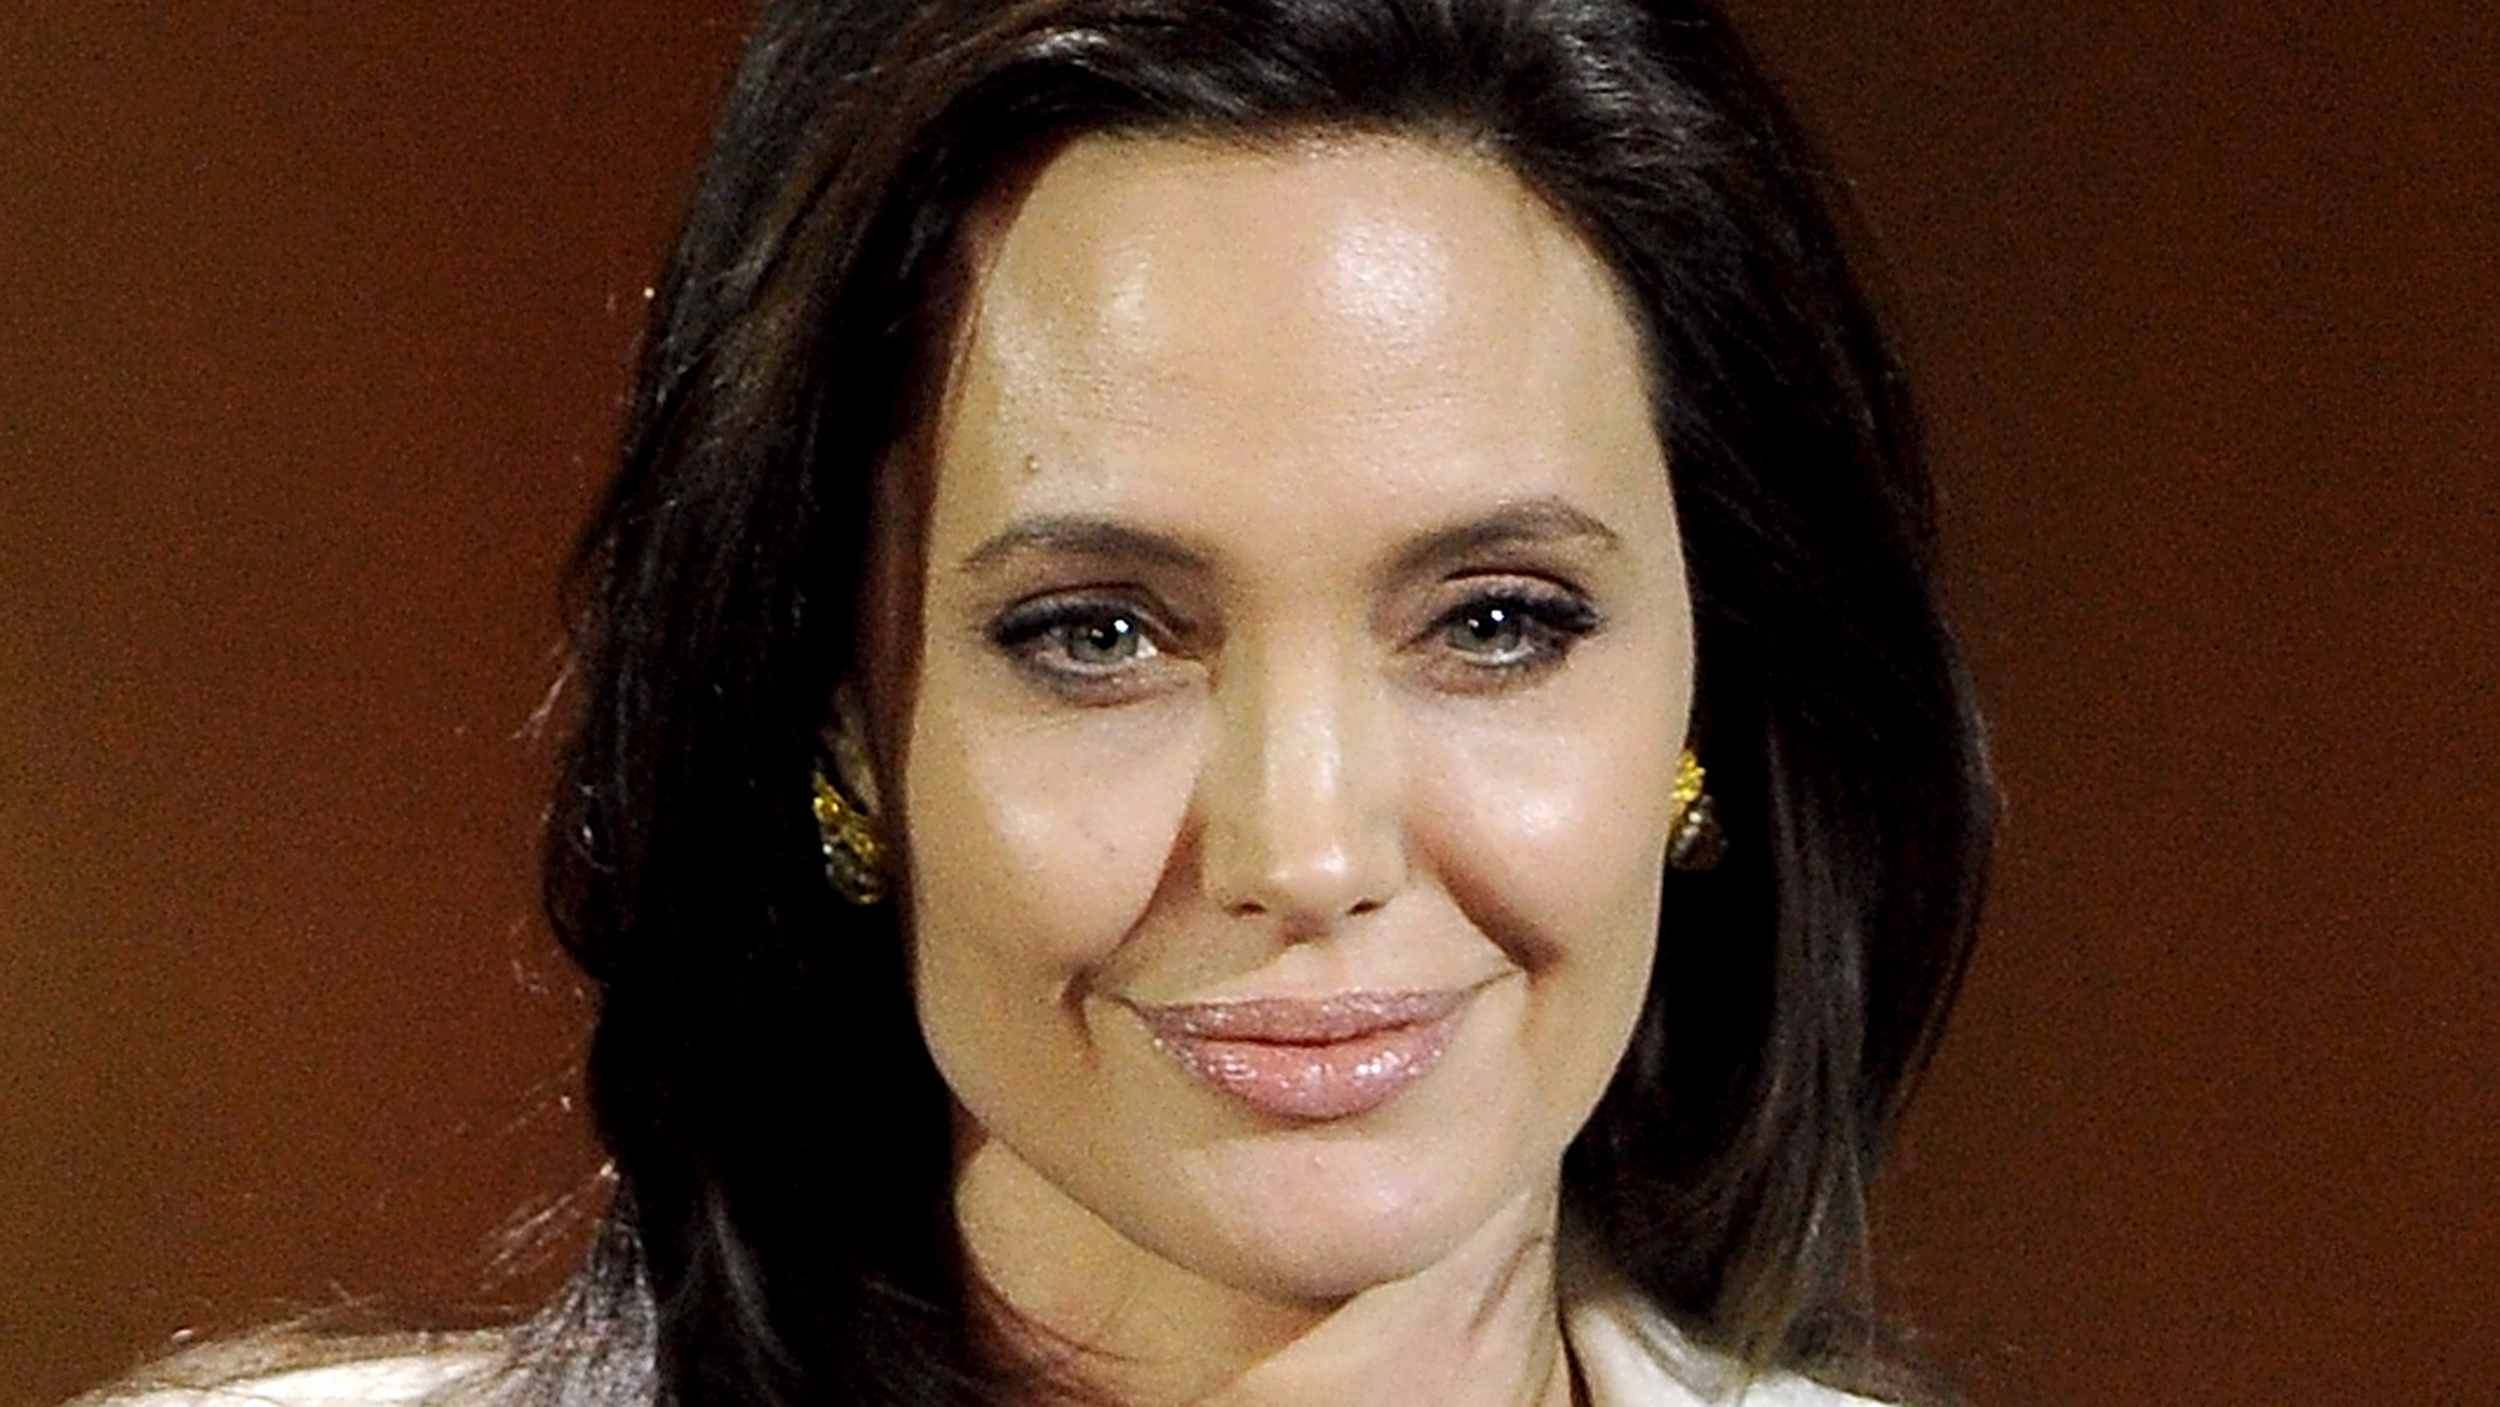 Angelina Jolie News: Angelina Jolie To Work With Son Maddox In New Film For